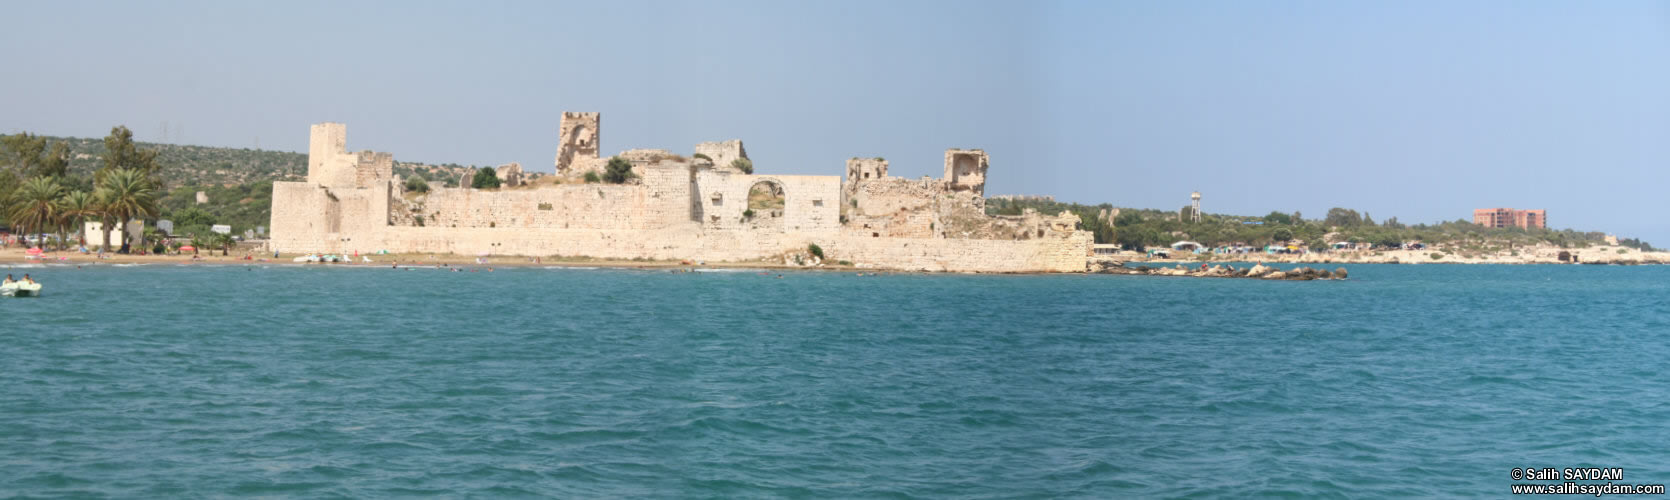 Panorama of Outer Castle (Korykos, Maiden's Castle) 4 (Mersin, Erdemli, Maiden's Castle)